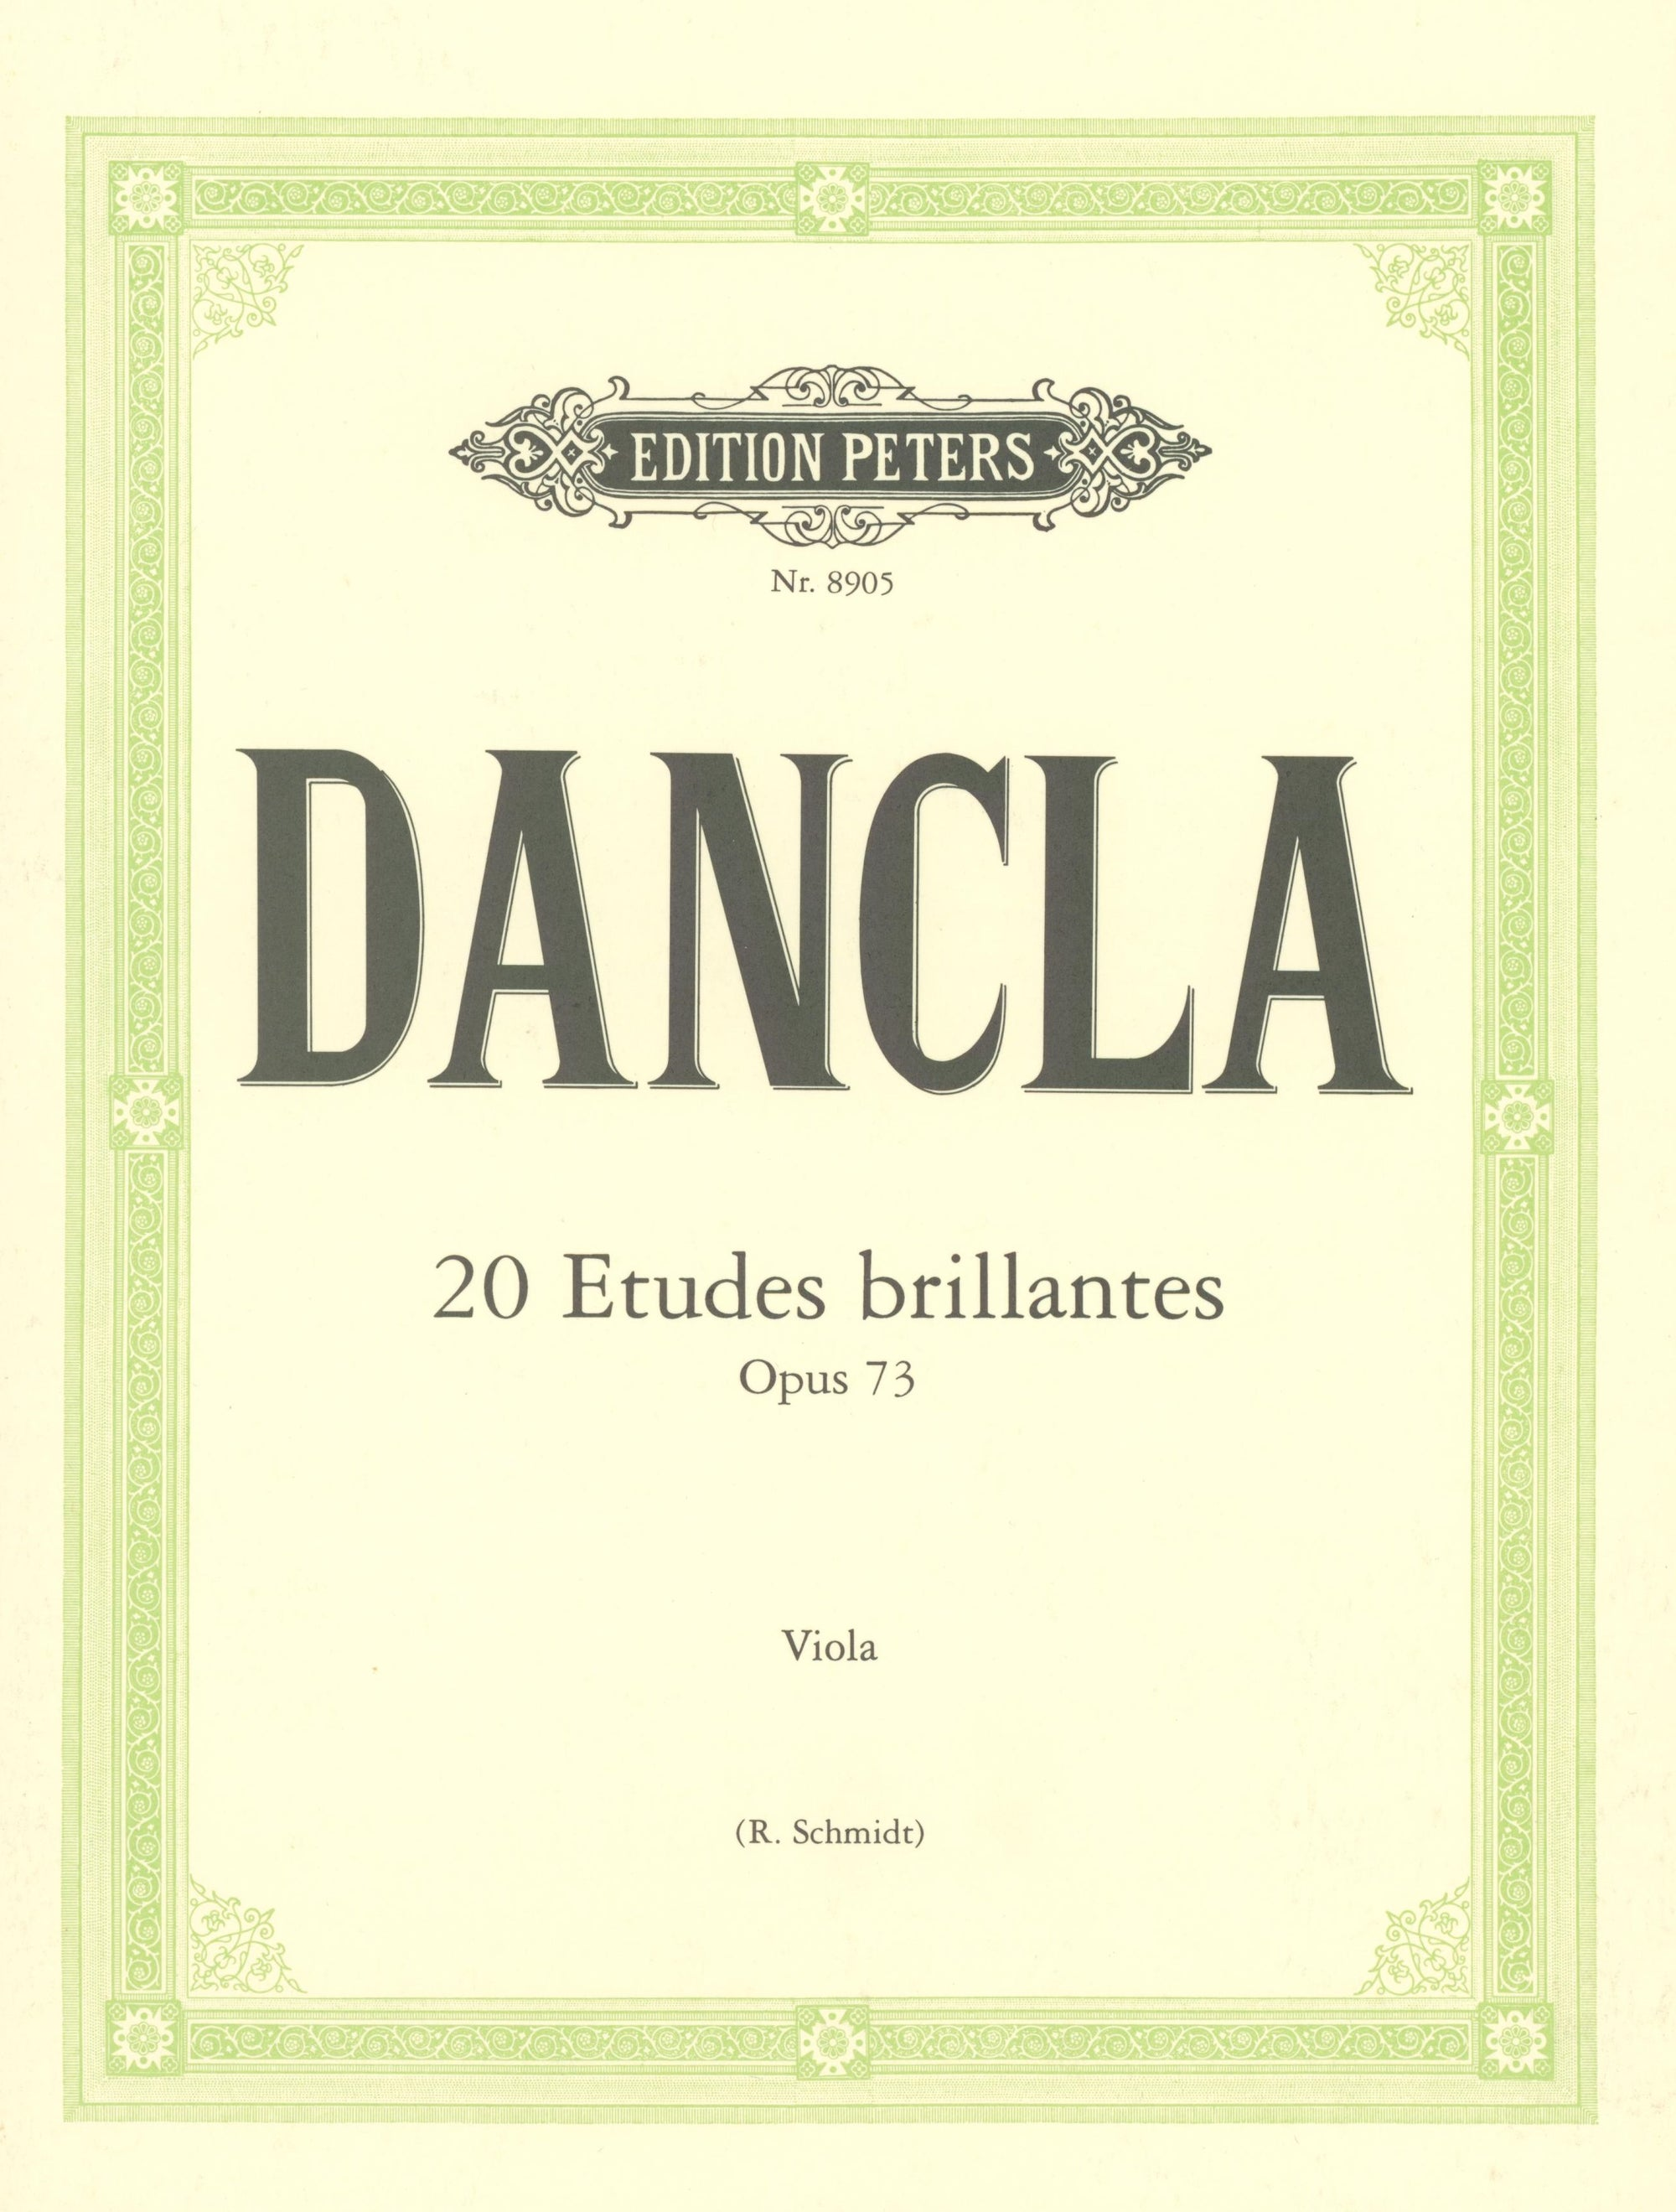 Dancla: 20 Etudes brillantes, Op. 73 (arr. for viola)